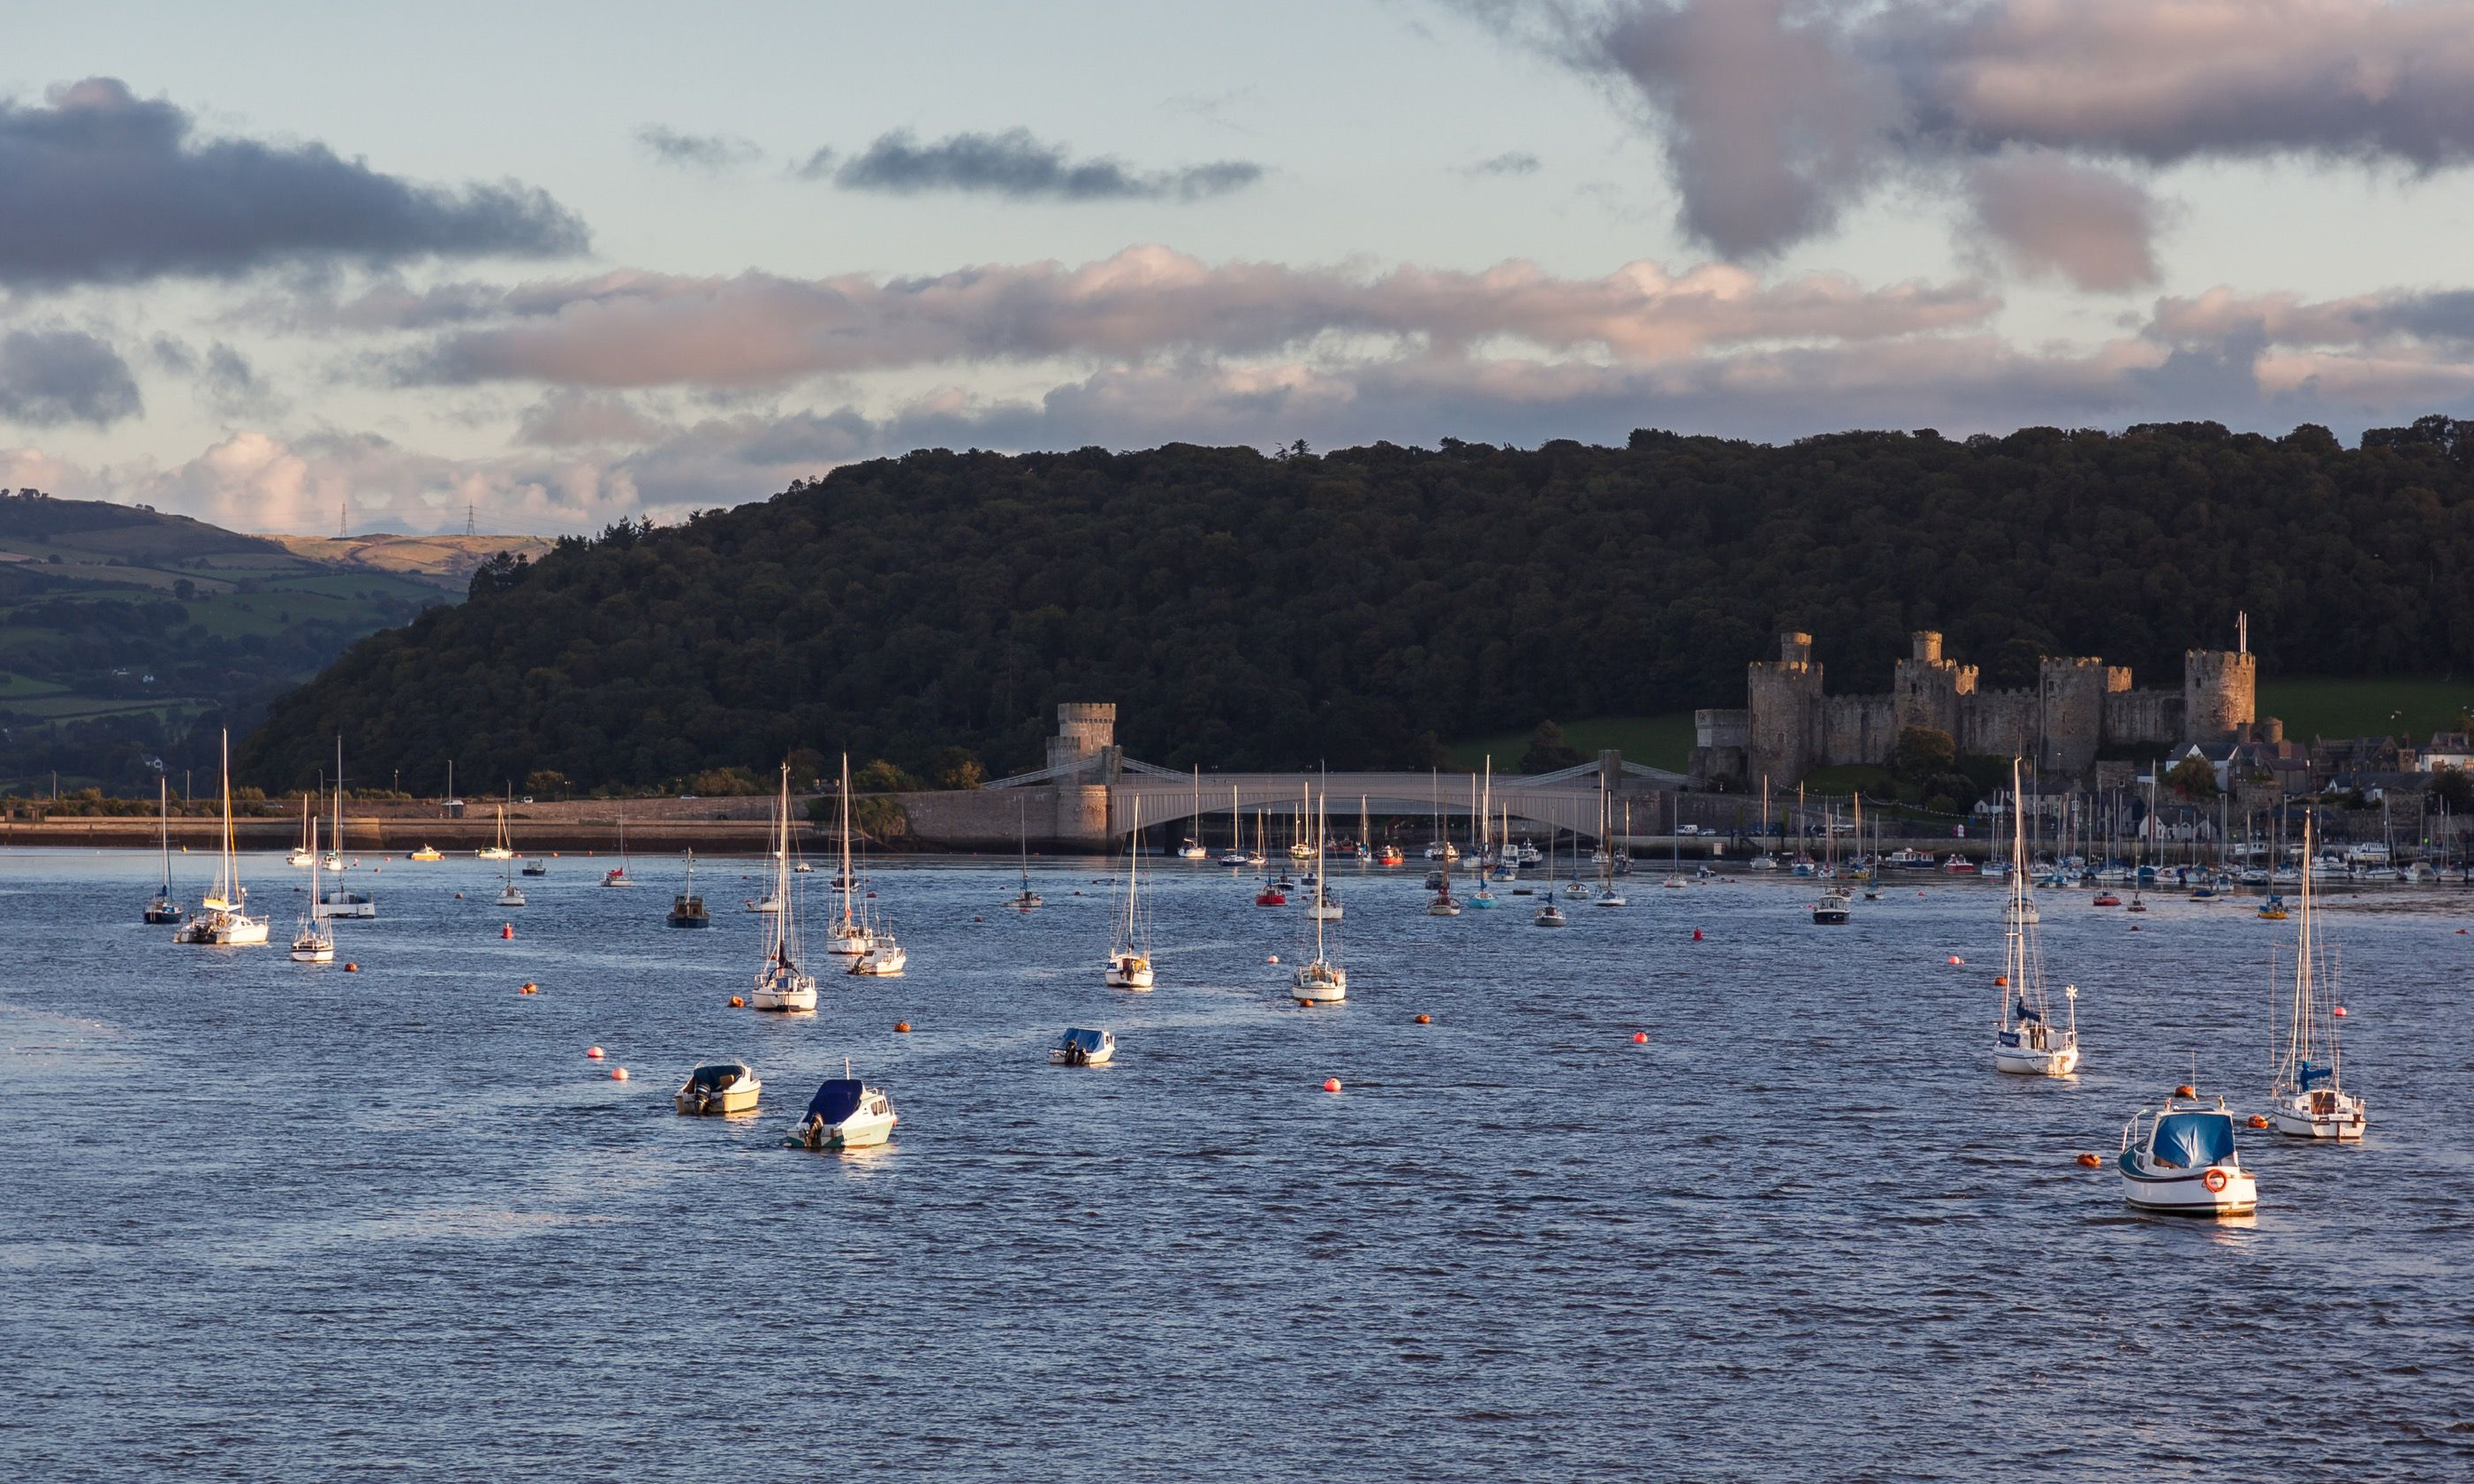 Conwy estuary. Possibly from a rib boat. (Dreamstime)